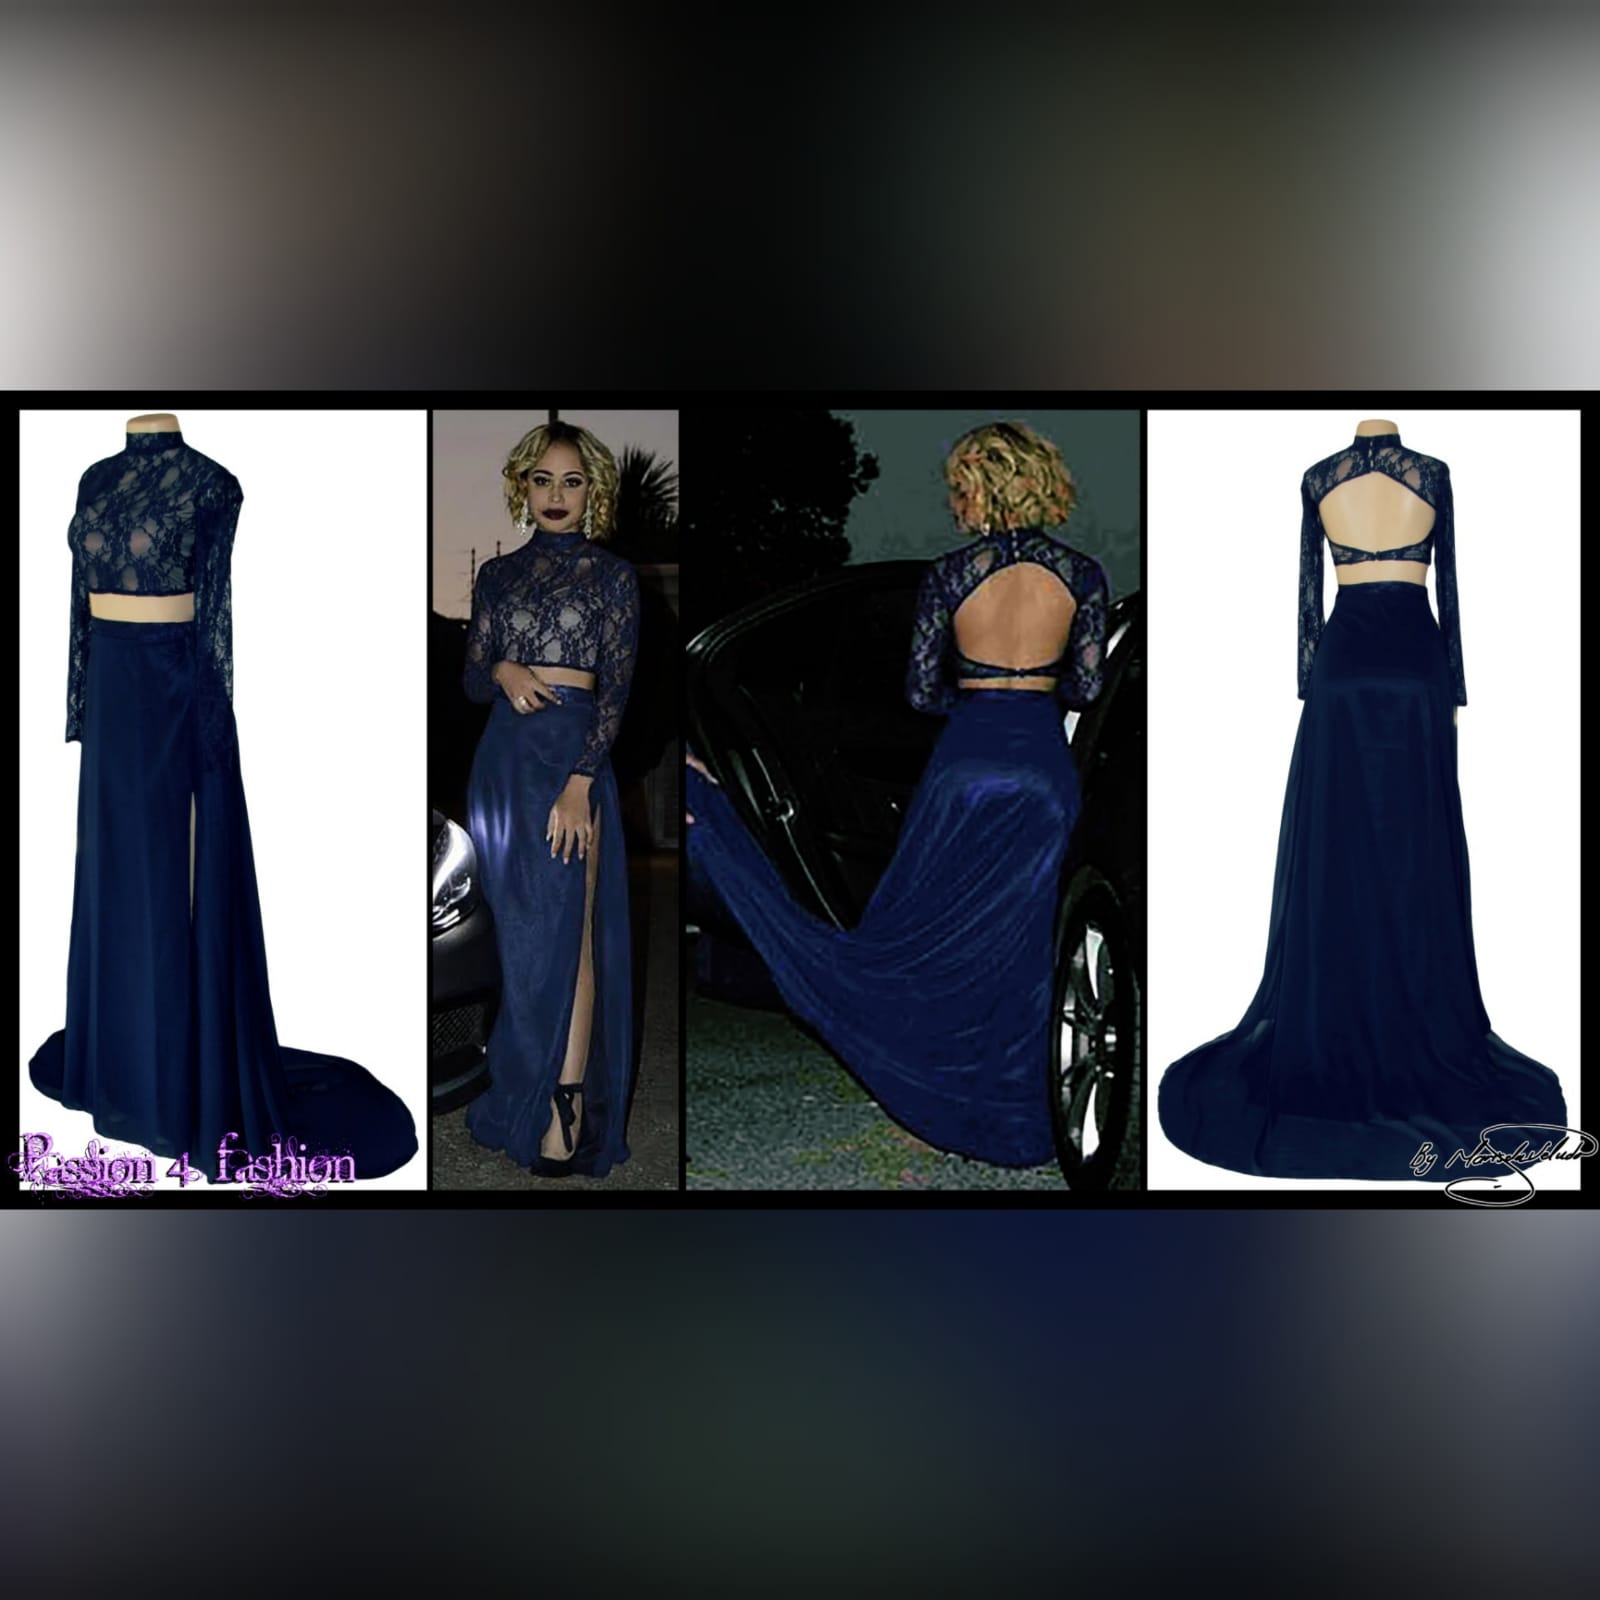 Navy blue 2 piece lace top matric dance dress 3 navy blue 2 piece lace top matric dance dress. Top with sheer long lace sleeves and open back flowy skirt with high slit and a train.